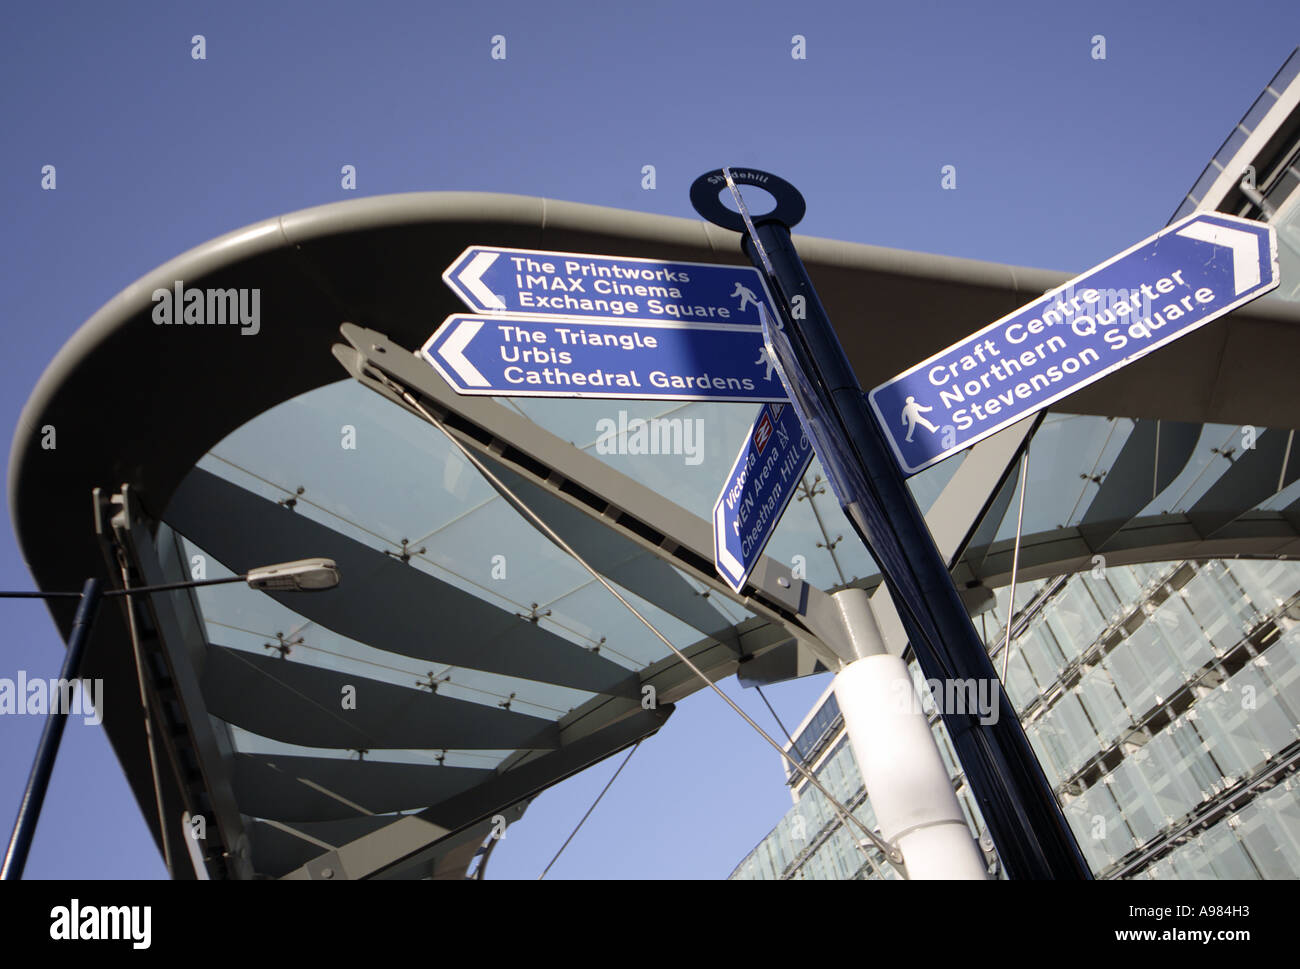 Signpost at the Shudehill interchange in the Northern Quarter Manchester UK - Stock Image